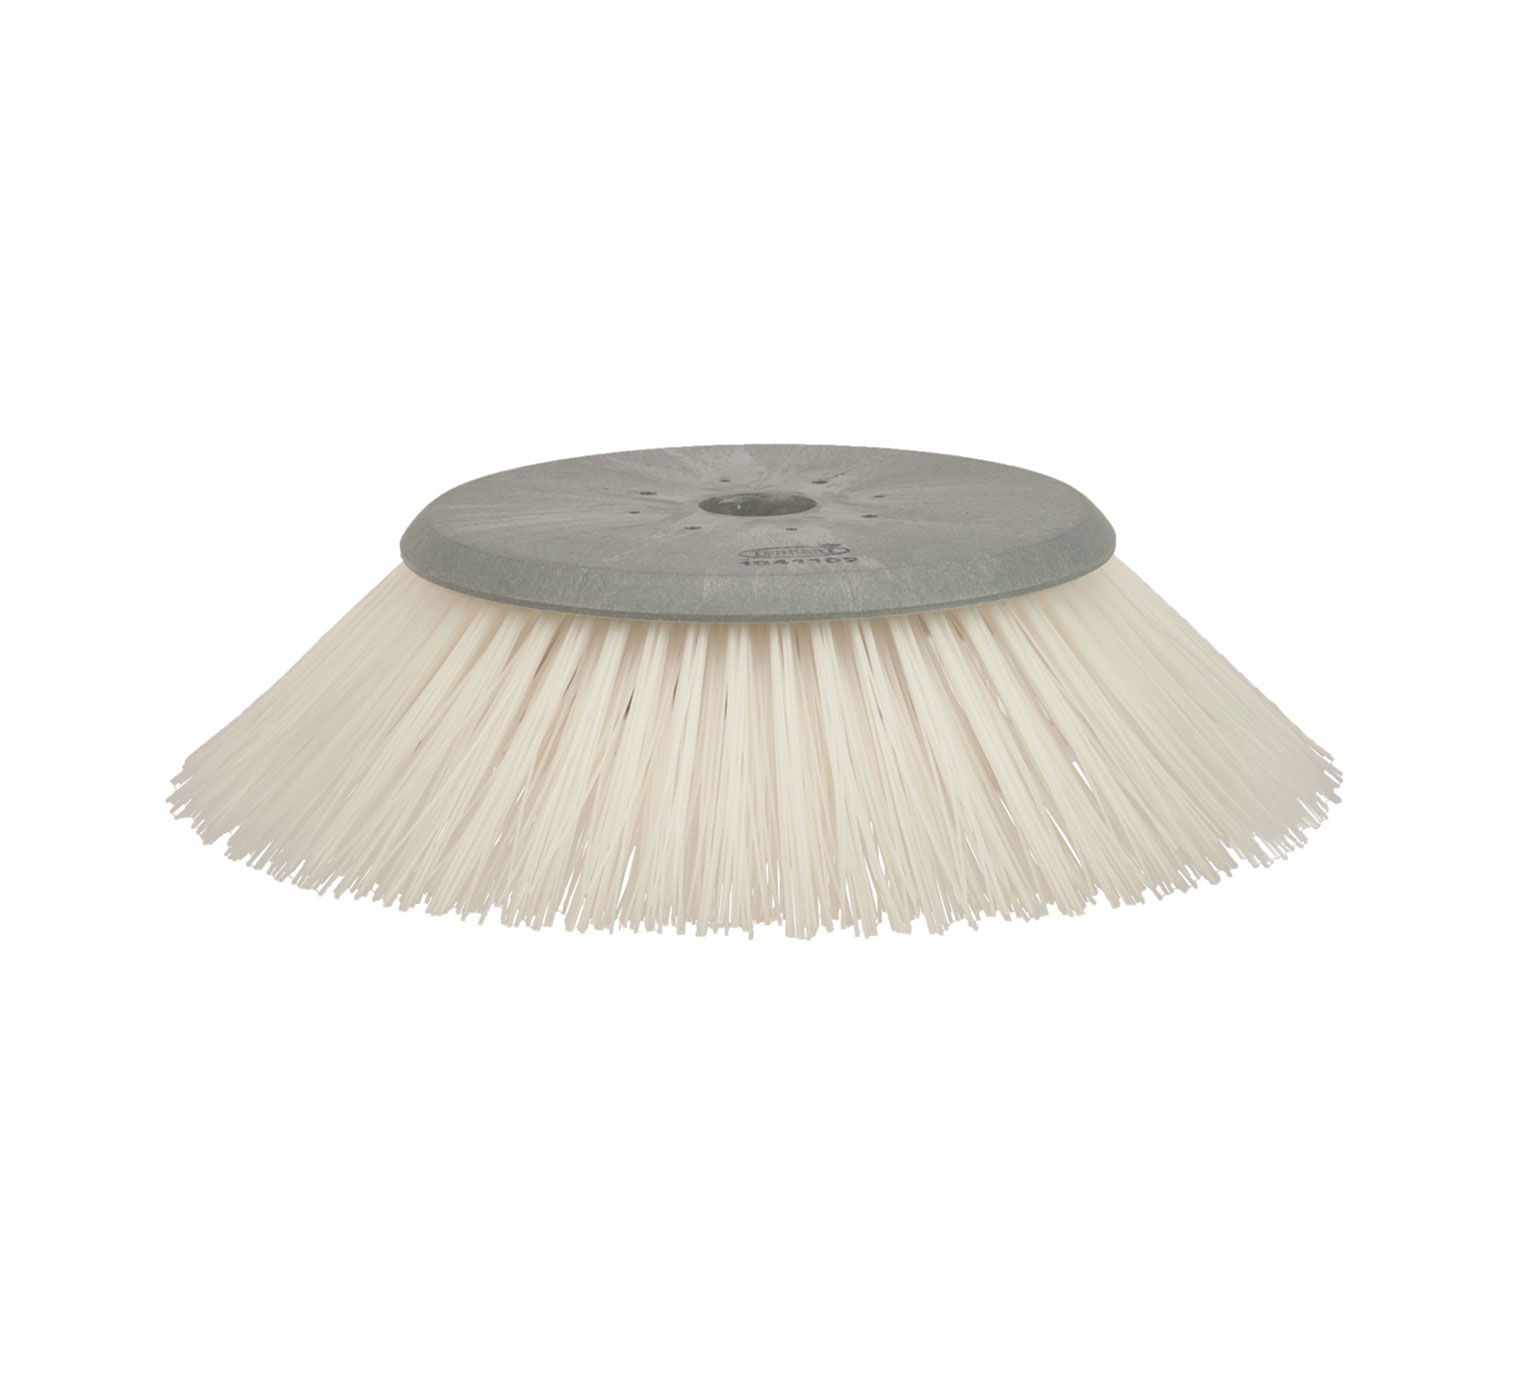 1041102 Nylon Disk Sweep Brush – 26 in / 660 mm alt 1